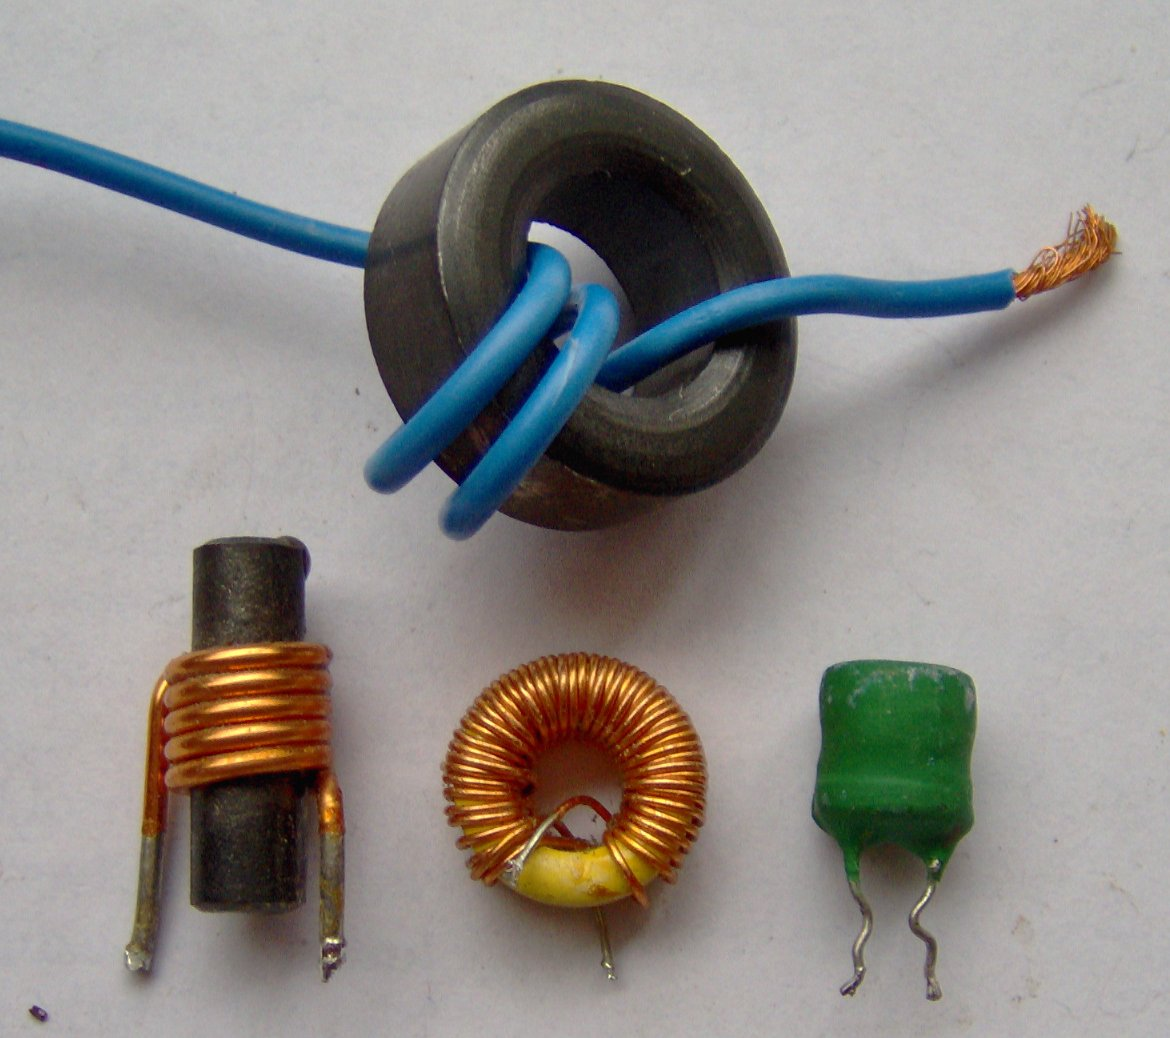 Inductor Wikipedia Voltage Controlled Capacitors And Inductors